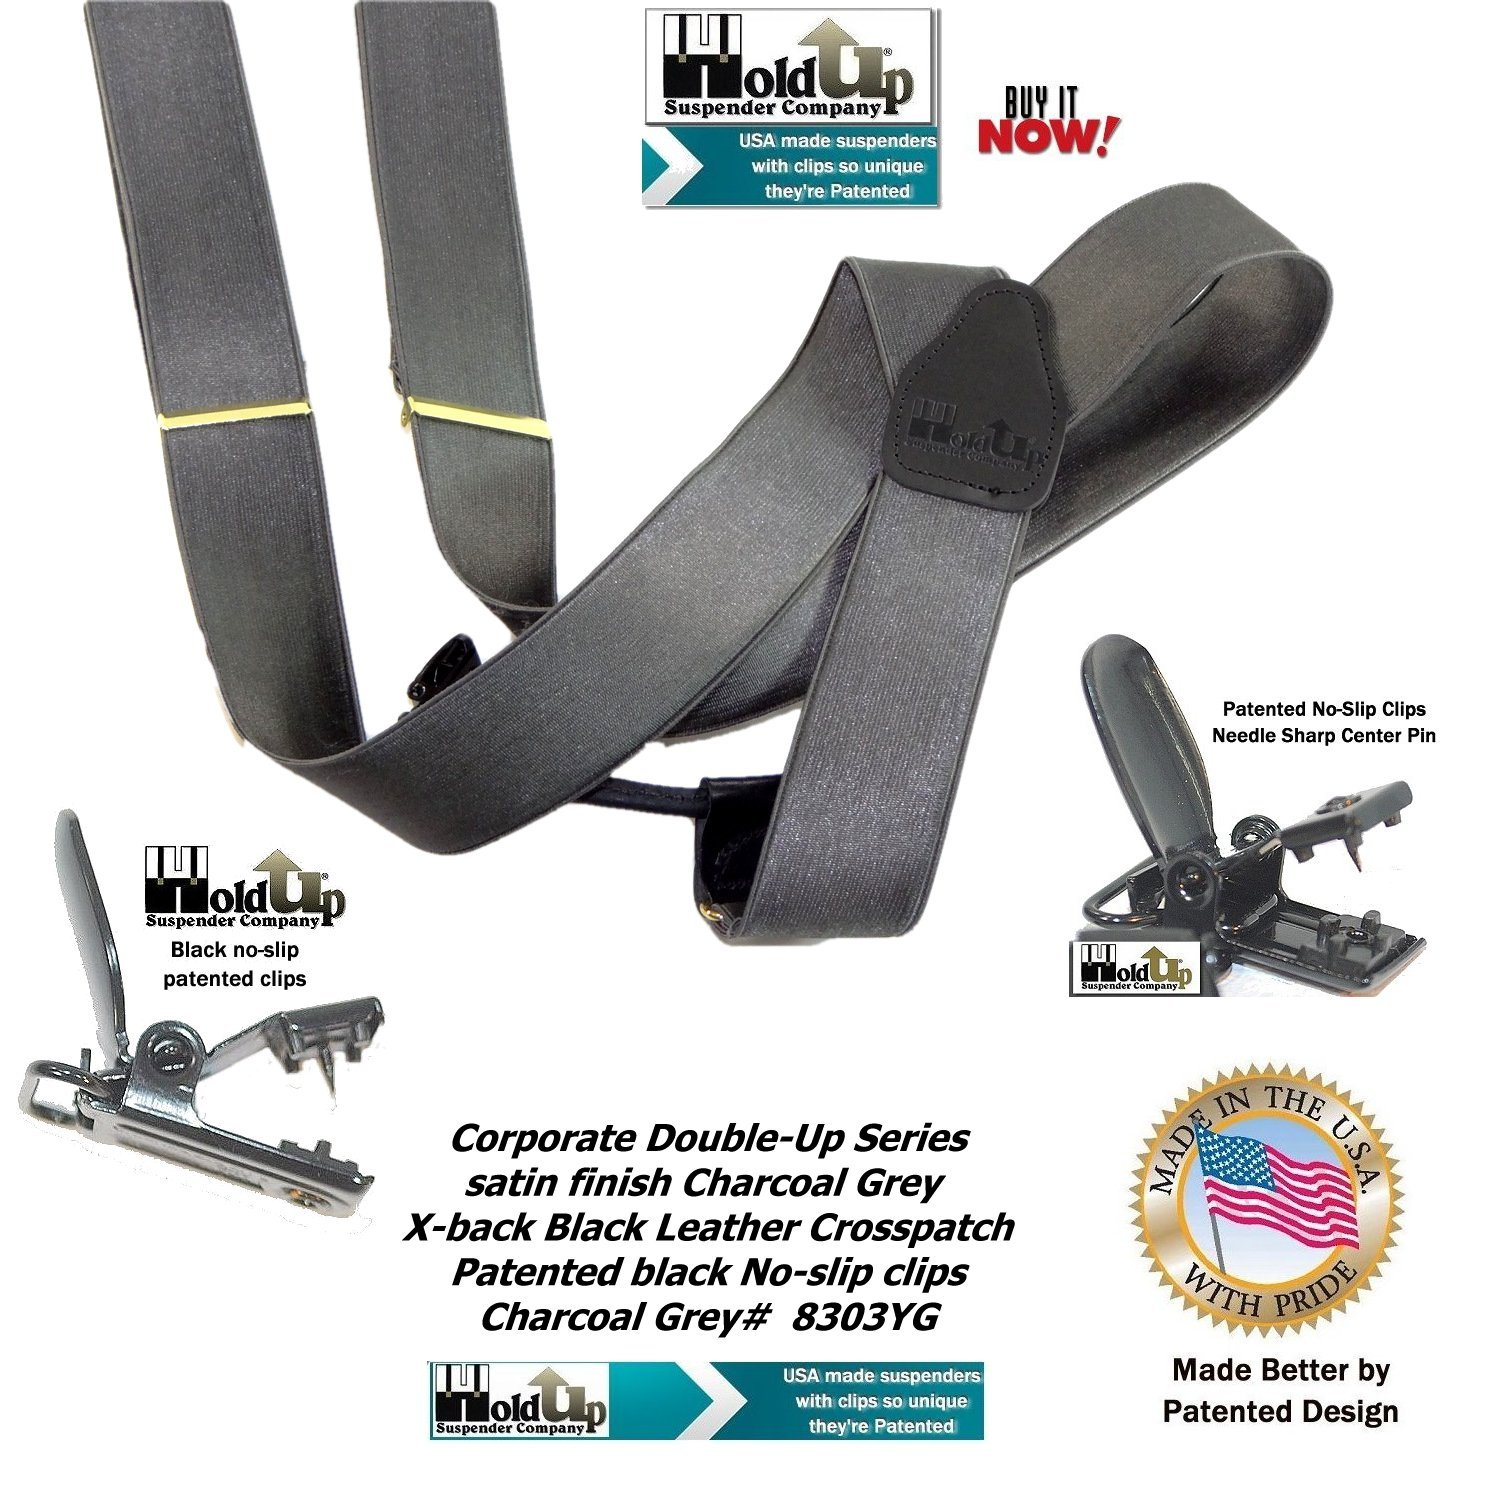 HoldUp Brand Corporate Series Dual Clip Double-up Suspenders in Satin Finish Charcoal Gray with black No-slip Clips